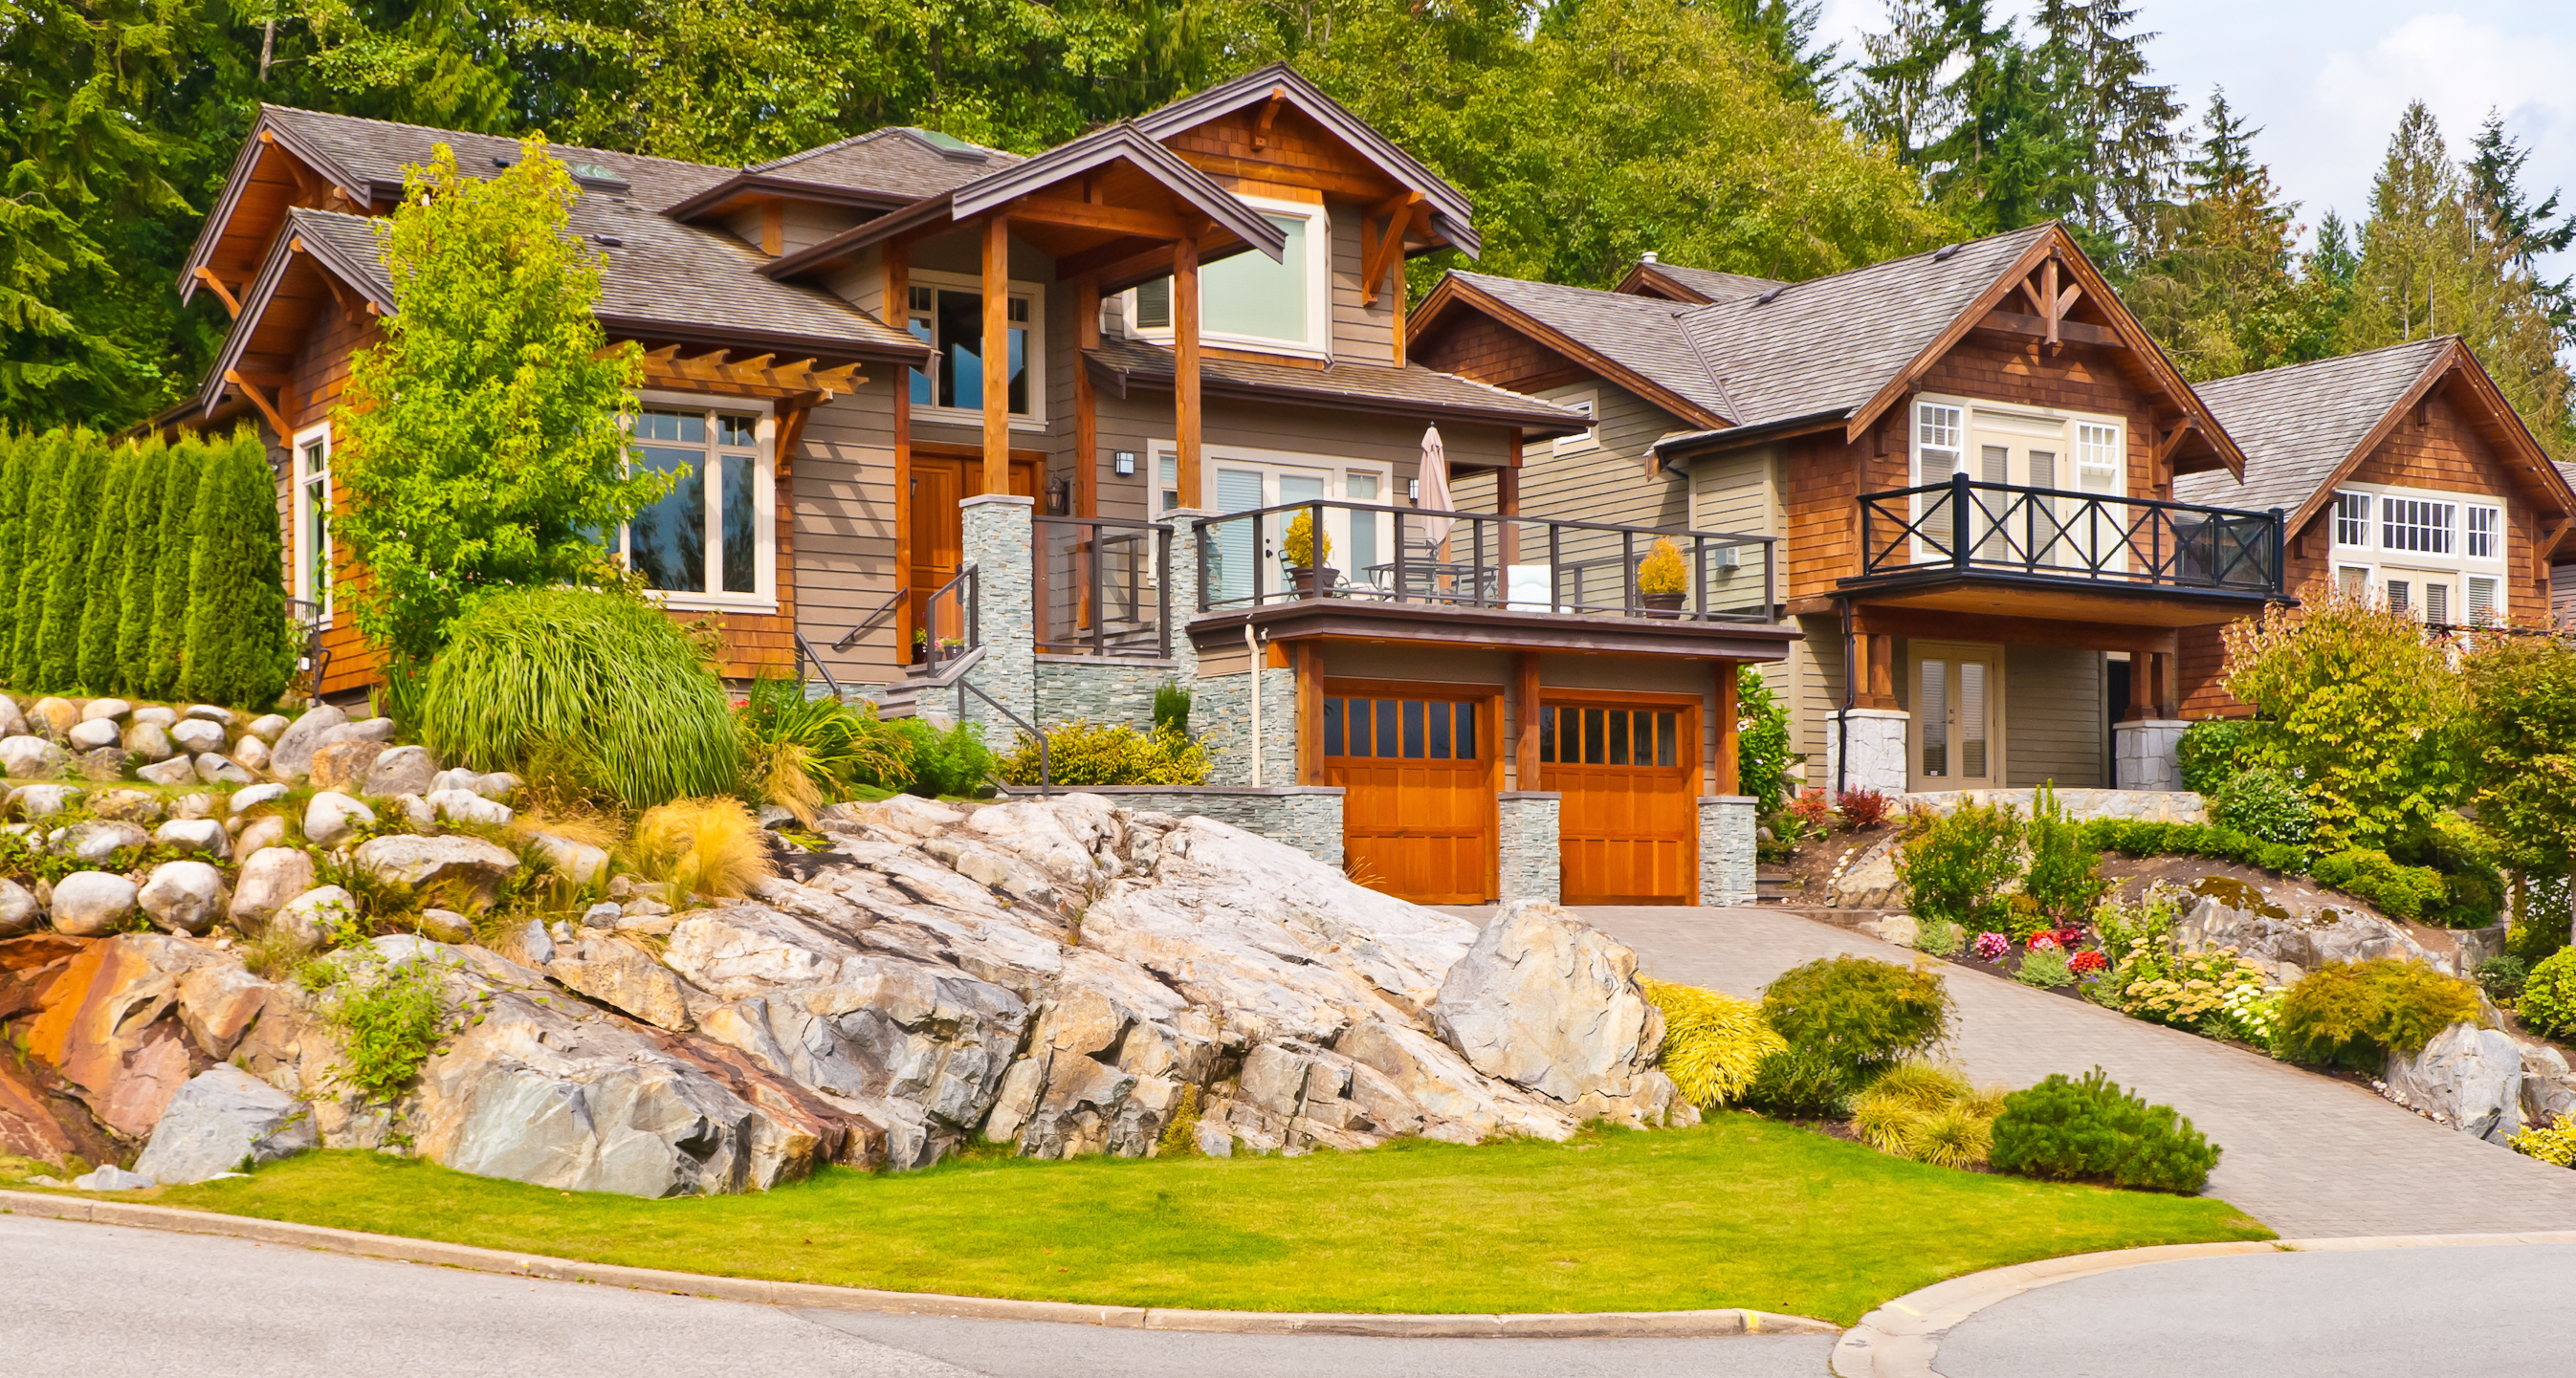 Minneapolis and st paul real estate search all for Home and landscape design andover mn